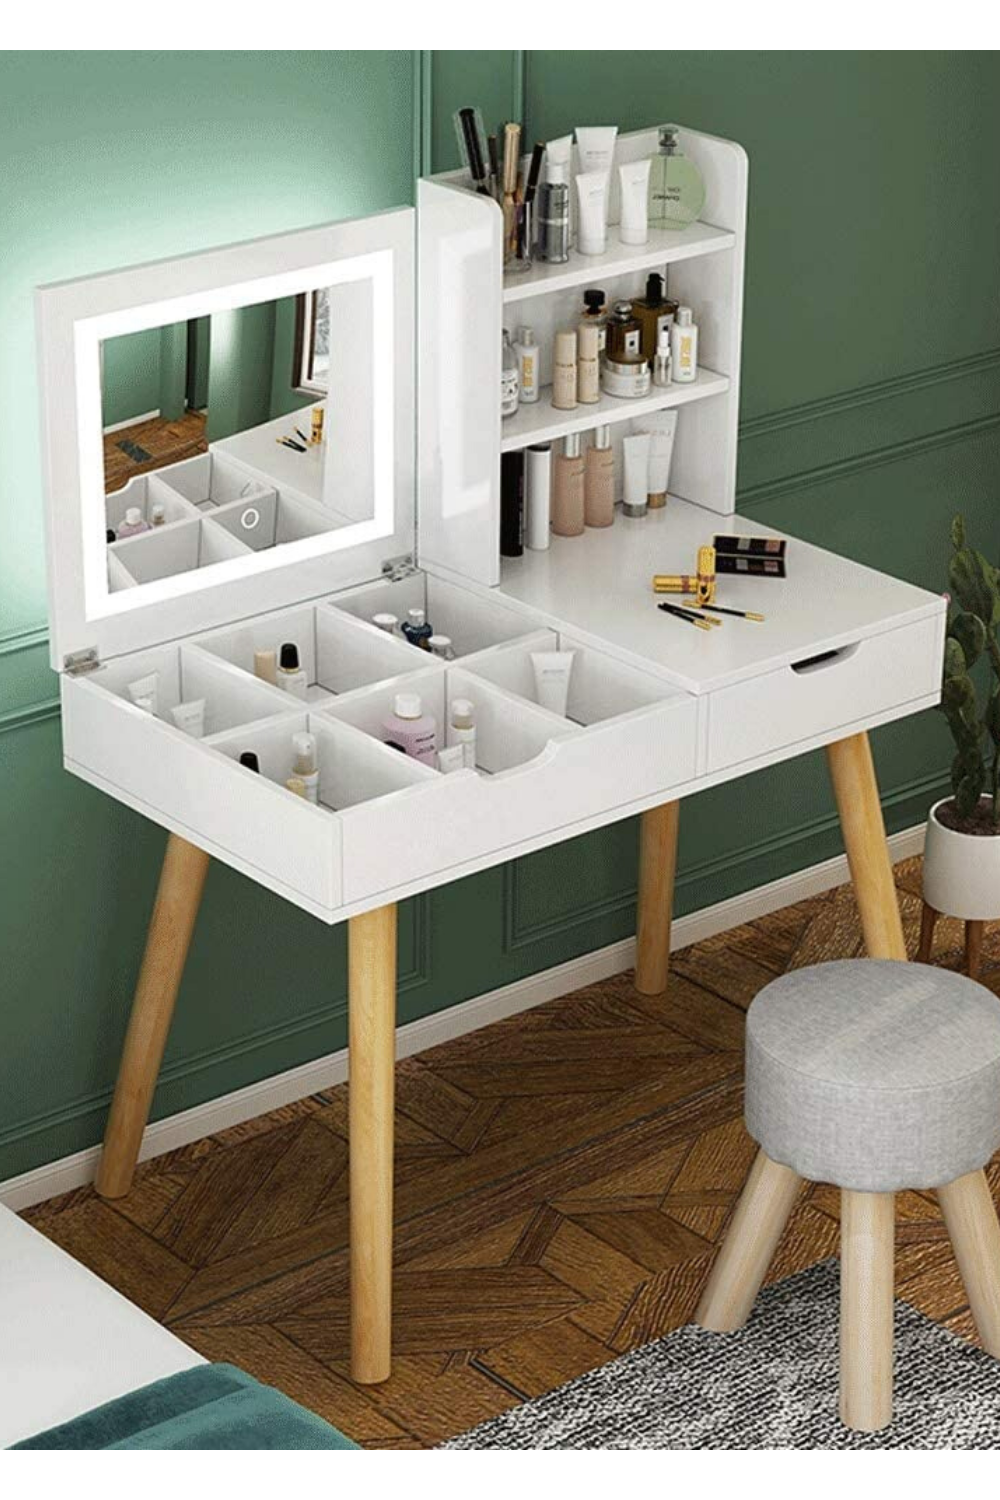 Dressing Table Cosmetic Storage Room Economy Furniture ...